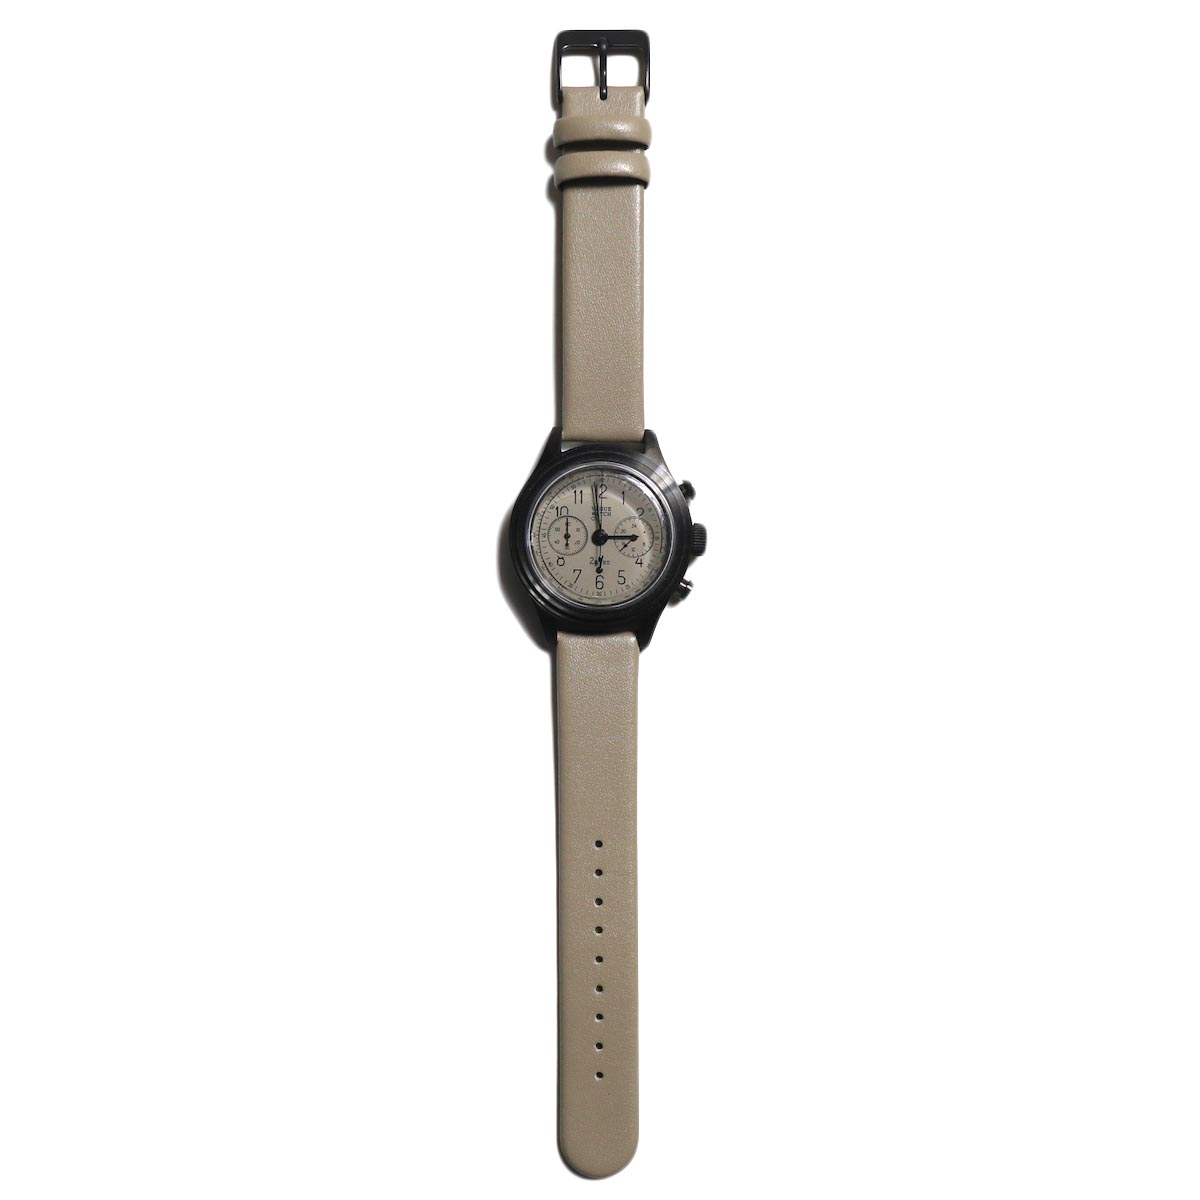 Vague Watch Co. / 2EYES クロノグラフ -Gray